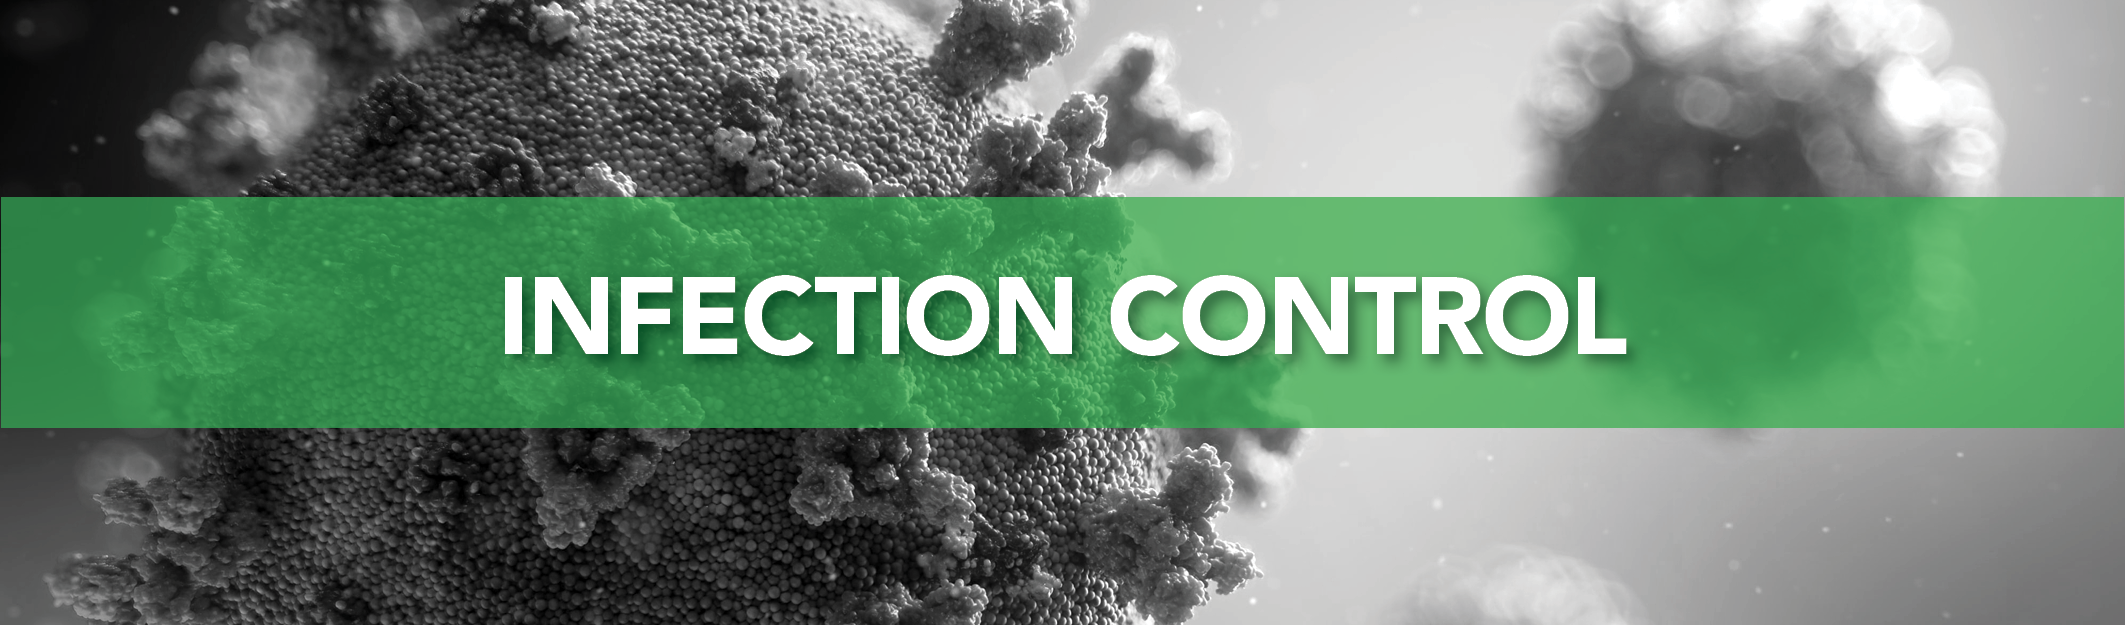 Infection Control Header_112320